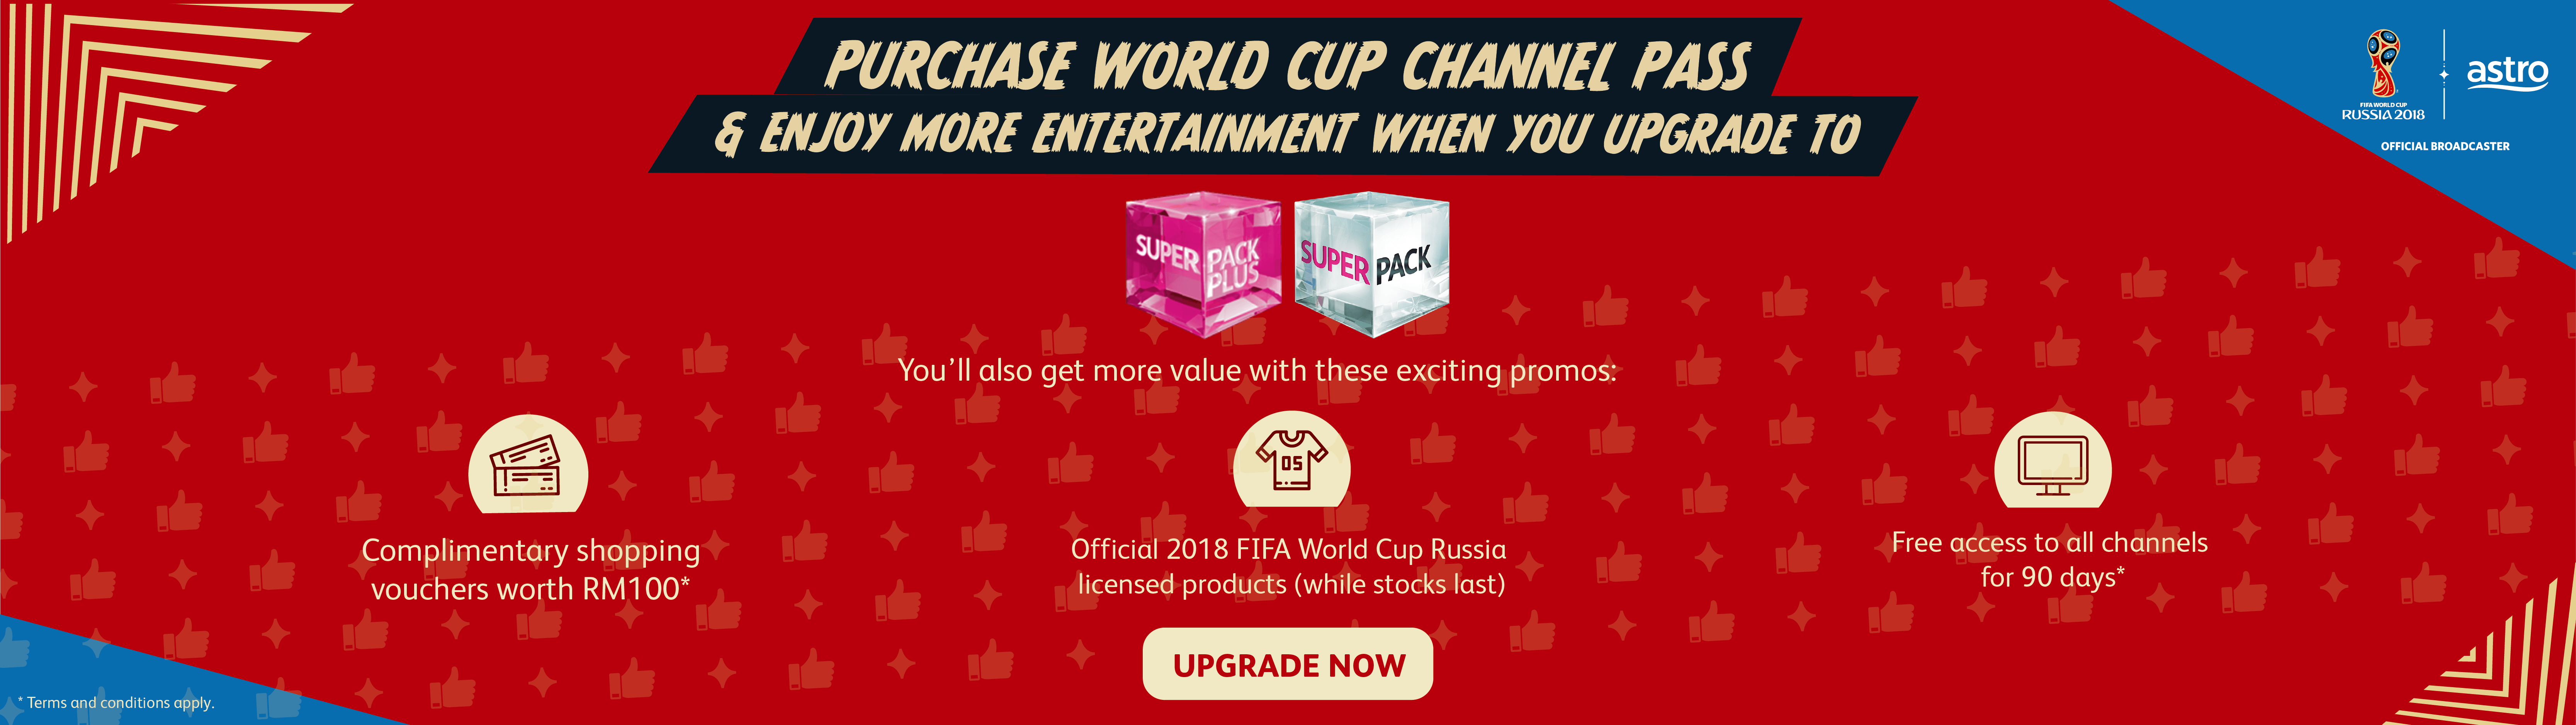 Get World Cup Channel Pass & Win A 1-Year Astro Subscription!